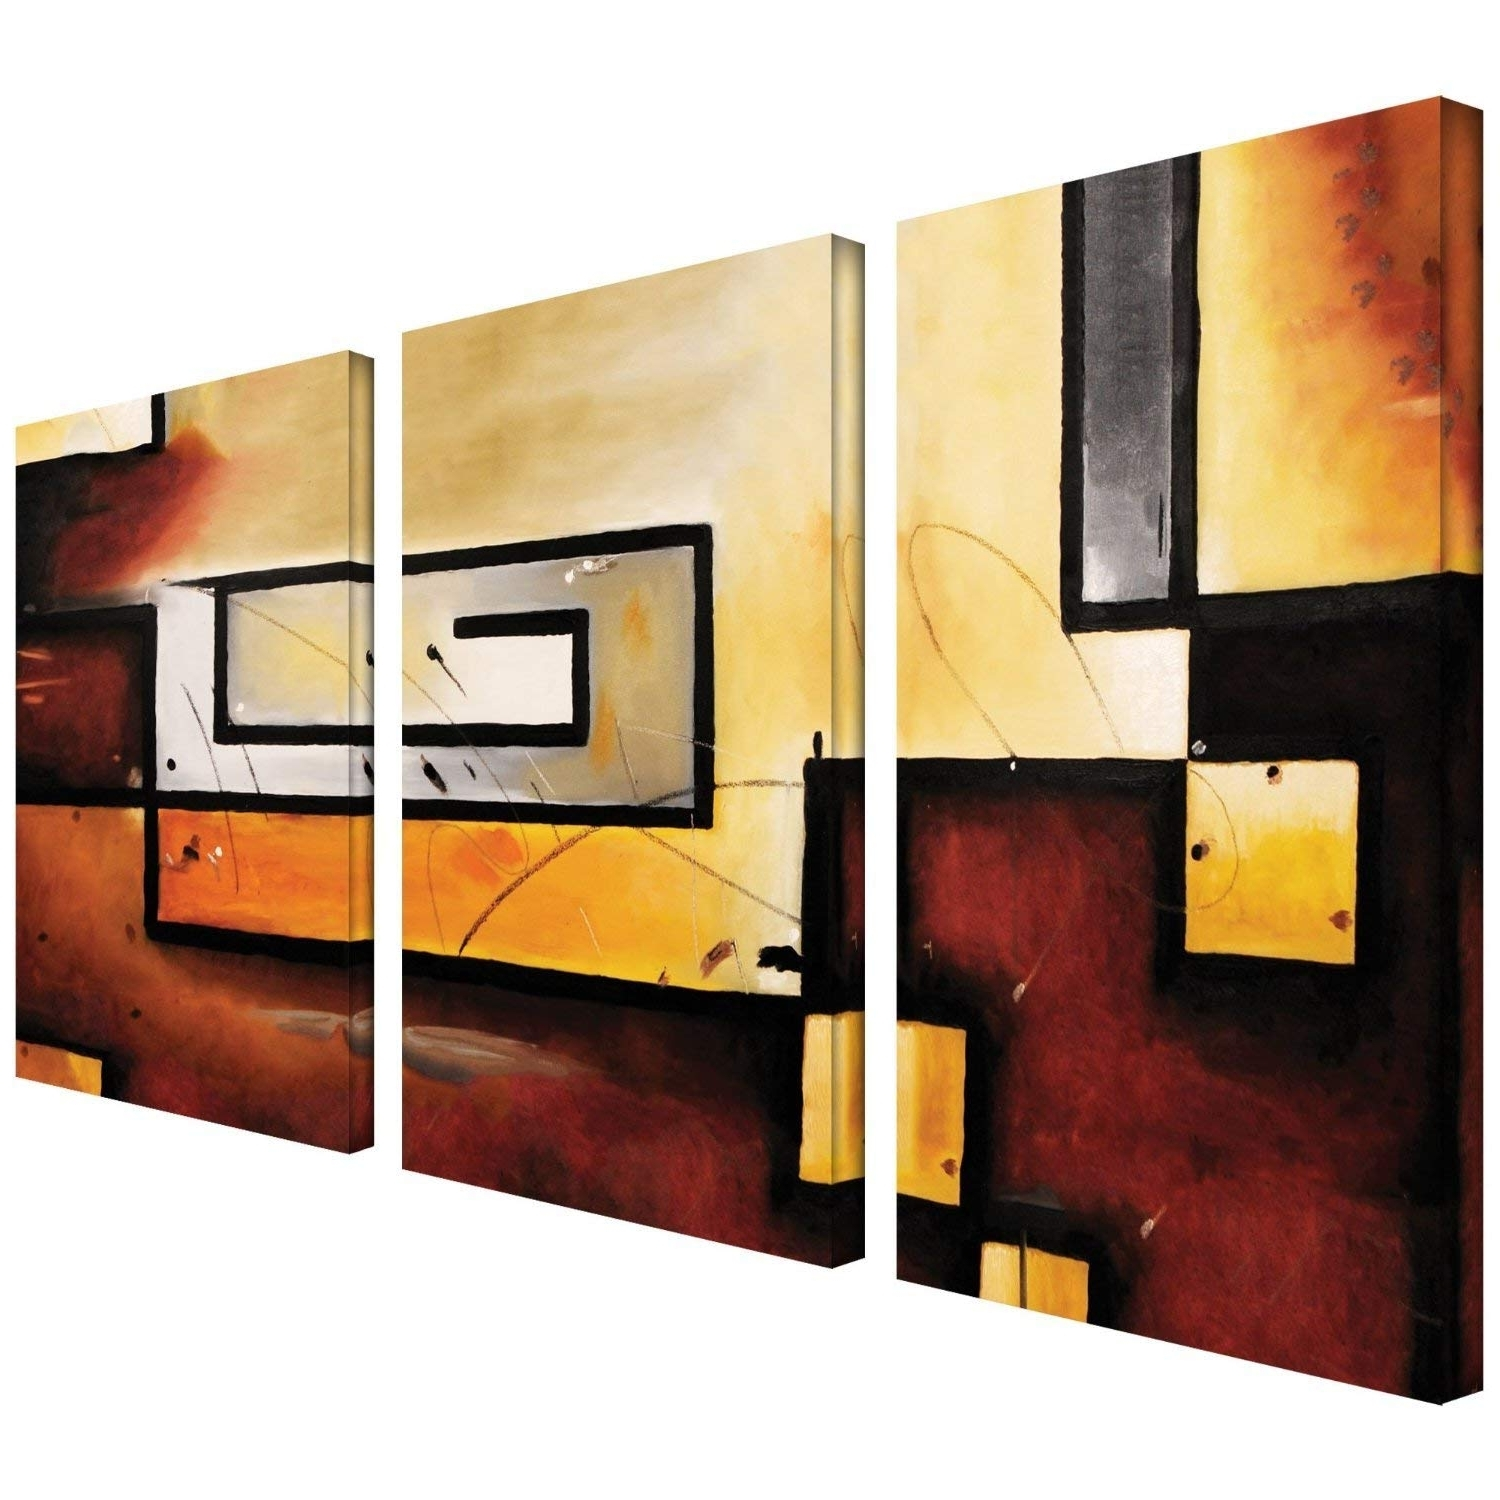 3 Piece Canvas Wall Art With Regard To Newest Amazon: Art Wall 3 Piece Abstract Modern Gallery Wrapped Canvas (View 4 of 15)